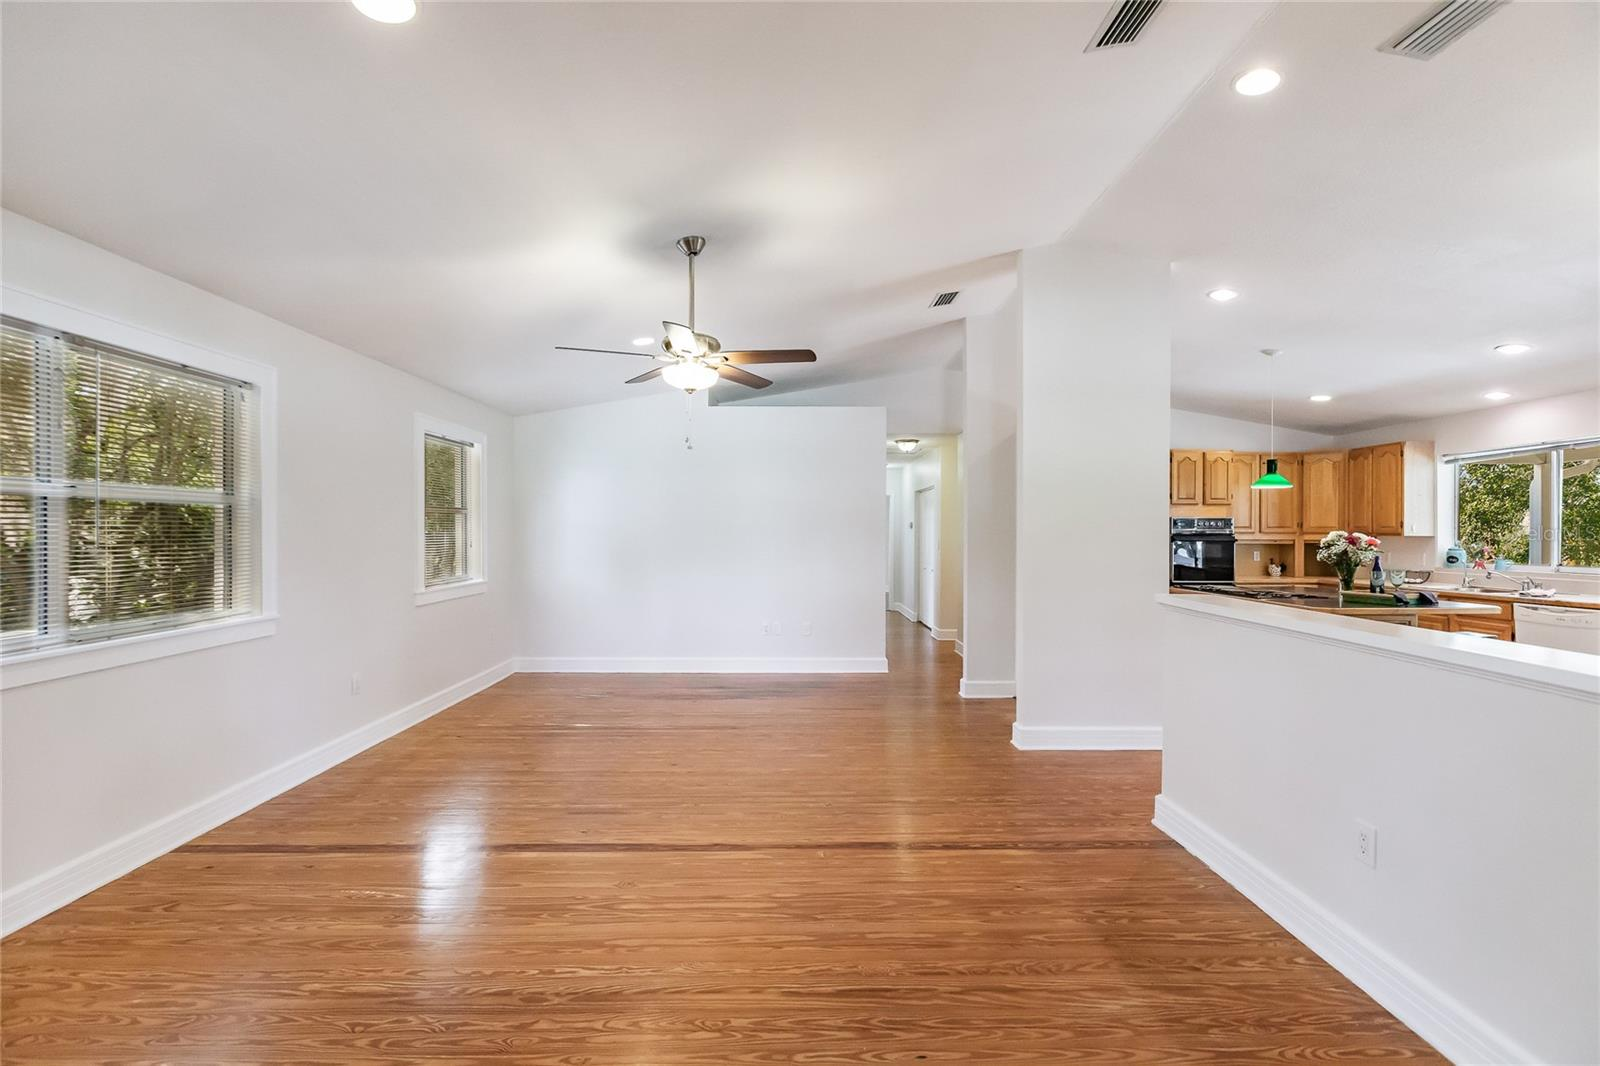 Entering the Front door and looking straight ahead into the Living Room. Lots of well placed windows provide natural light and great breezes! - Single Family Home for sale at 7811 27th Ave W, Bradenton, FL 34209 - MLS Number is A4499385